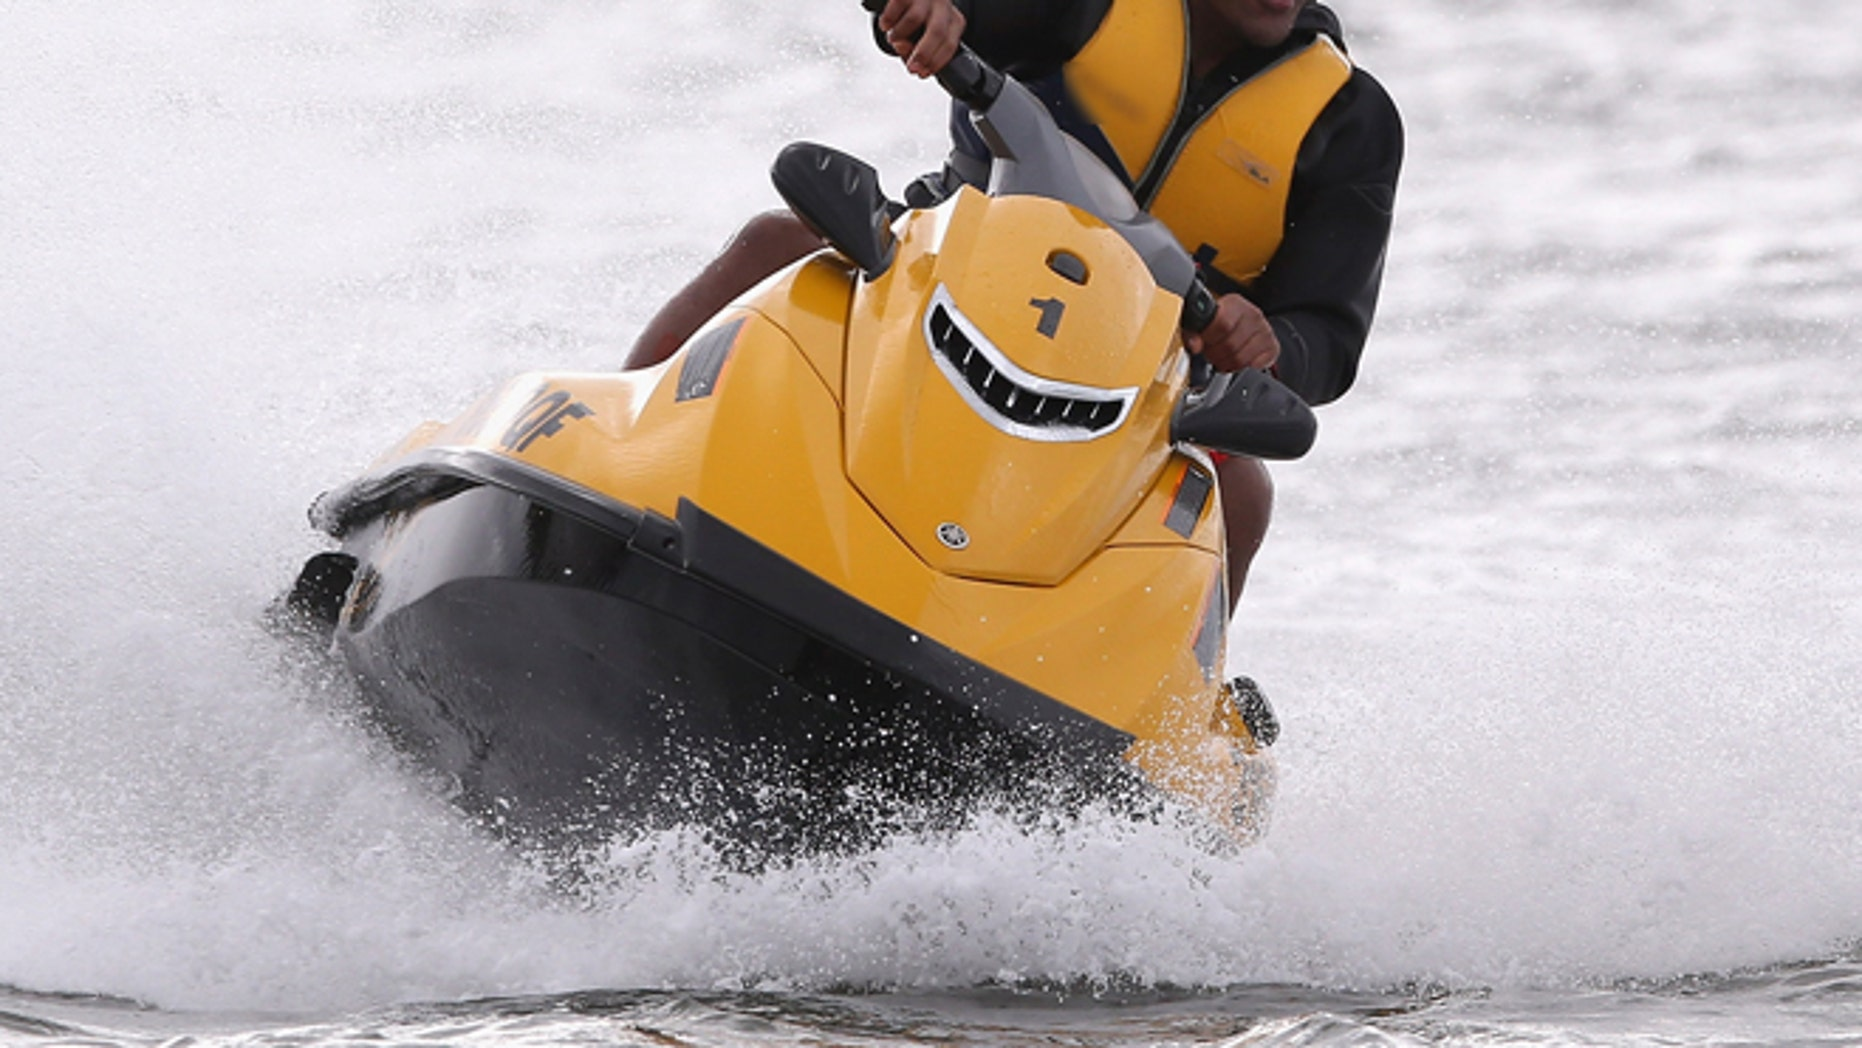 NOOSA, AUSTRALIA - JULY 01:  Mako Vunipola of the British and Irish Lions takes part in jetskiing in Noosa on July 1, 2013 in Noosa, Australia.  (Photo by David Rogers/Getty Images)